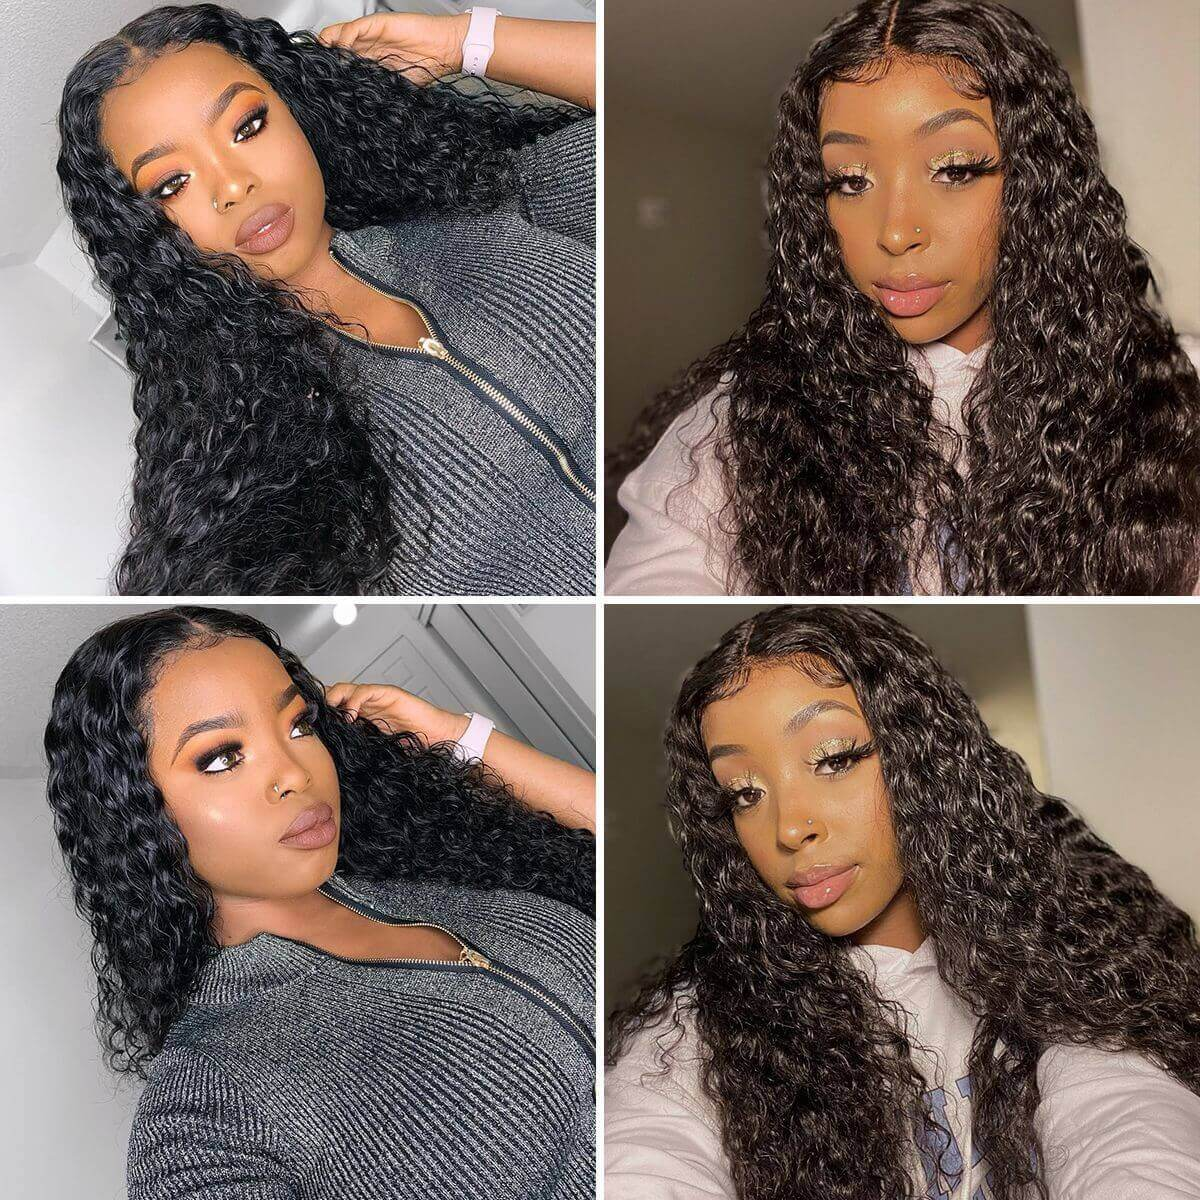 transparent lace frontal deep wave wig,deep wave transparent lace frontal wigs,transparent lace front wigs,transparent 13×4 lace frontal wigs,deep wave transparent lace wig,cheap deep wave transparent lace wig